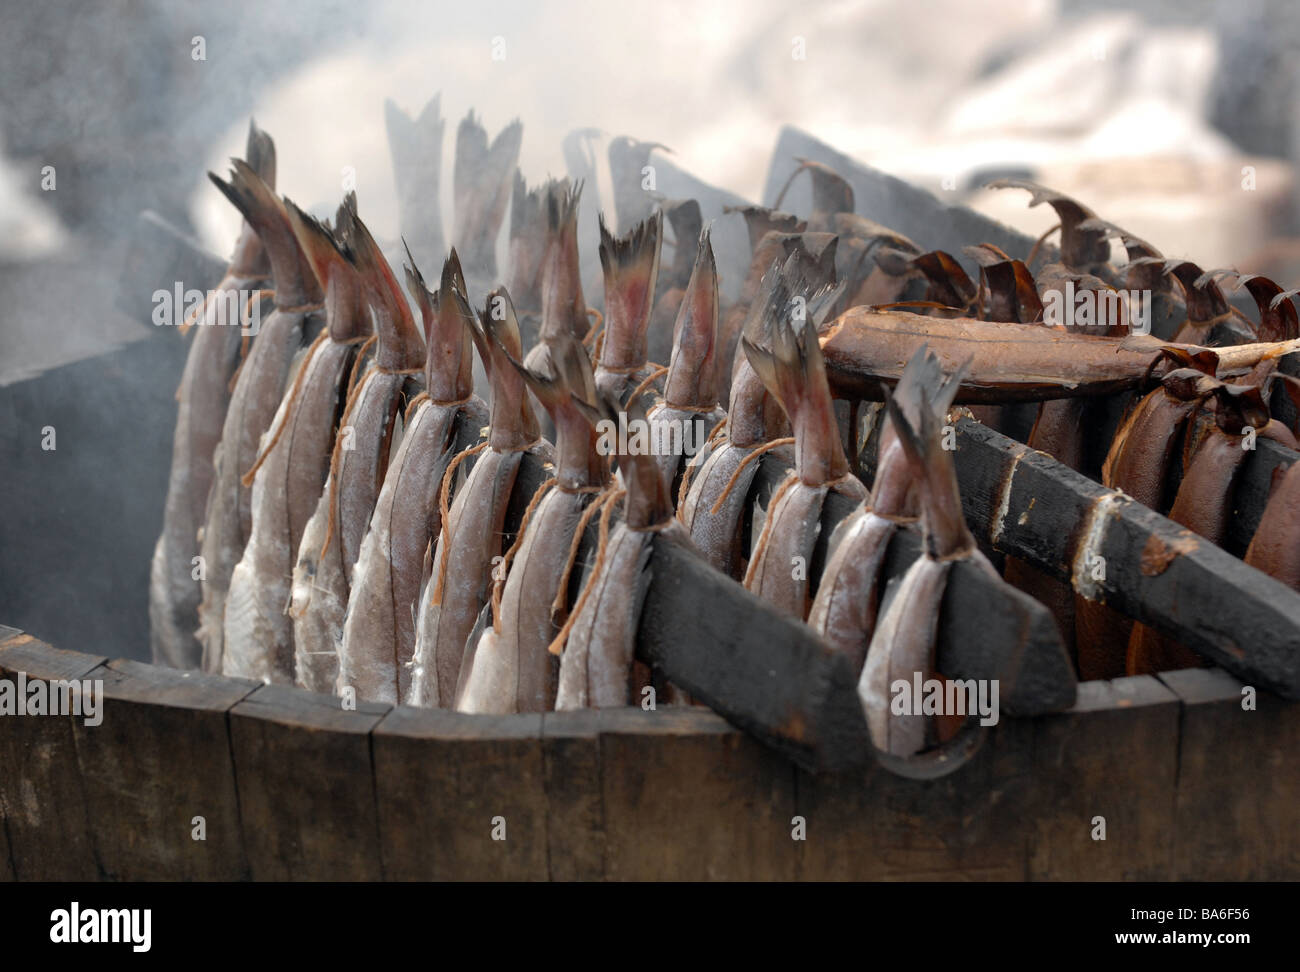 Arbroath smokies on sale at a farmers market in Scotland - Stock Image